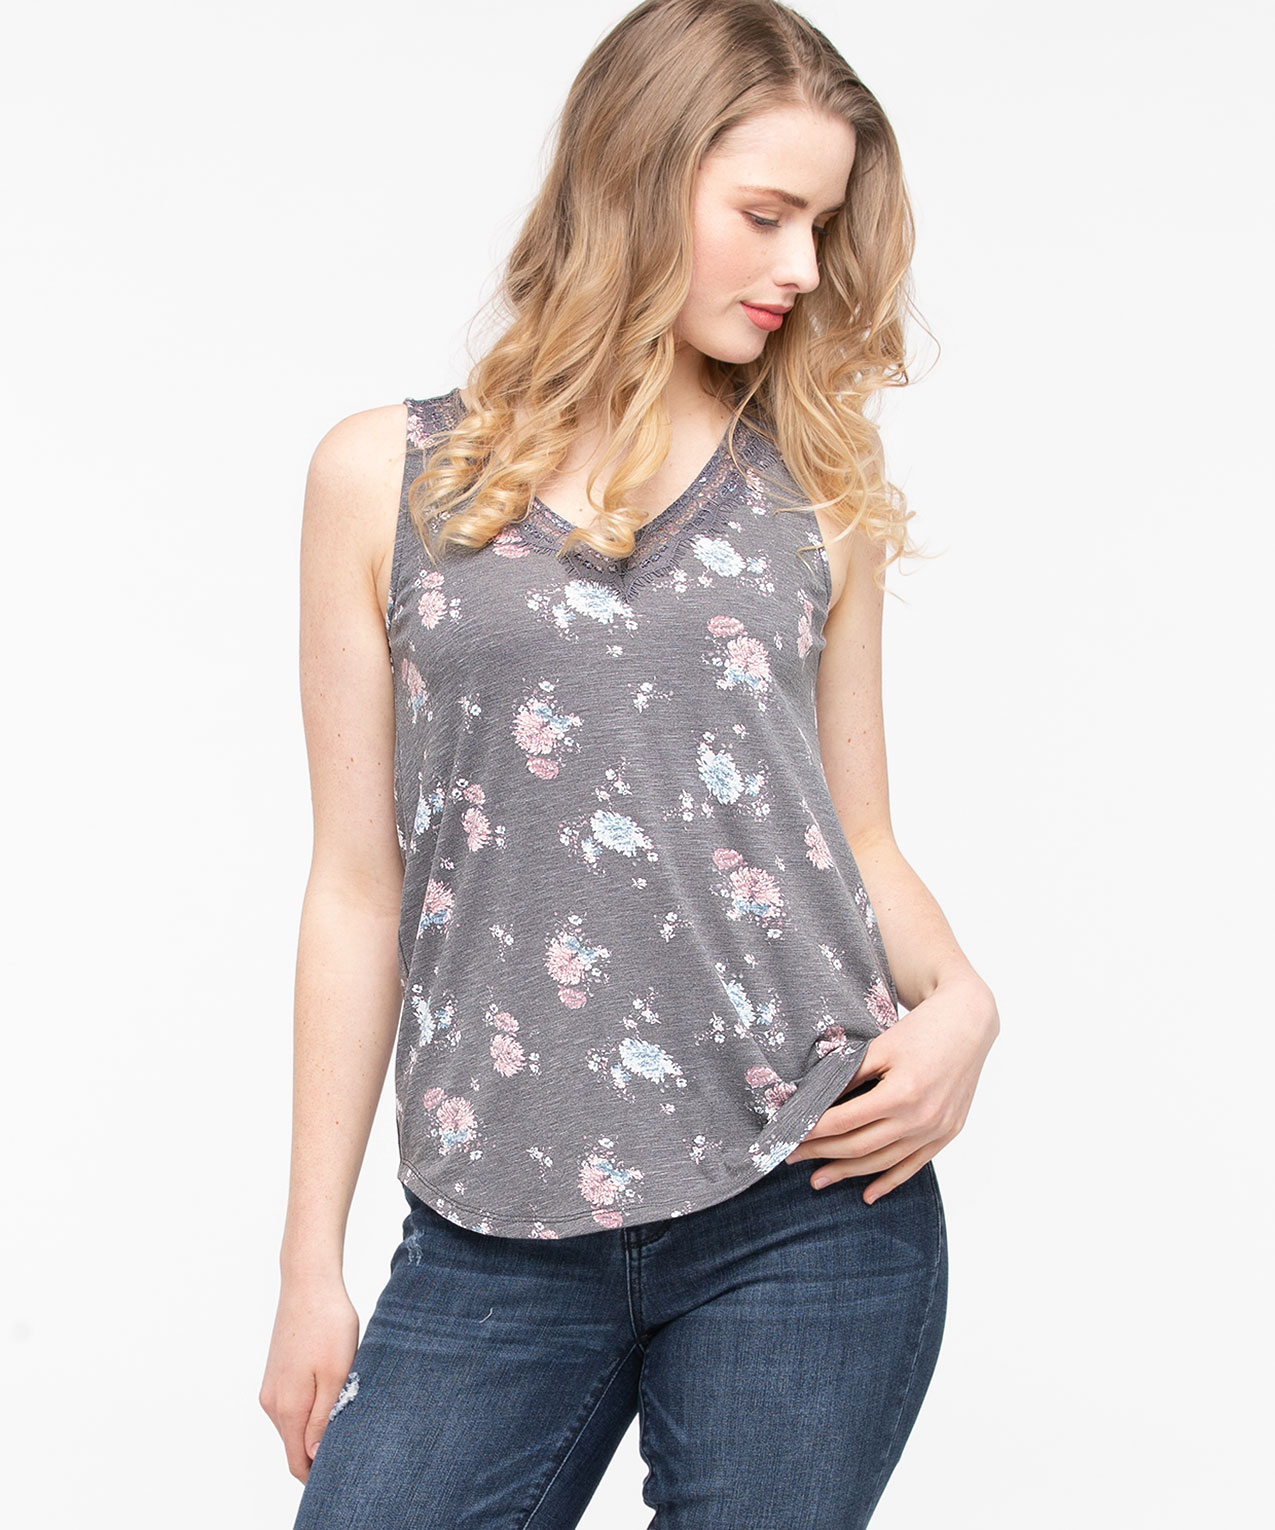 Sleeveless Lace Trim V-Neck Top, Heather Grey/Rose Petal/Sky Blue, hi-res